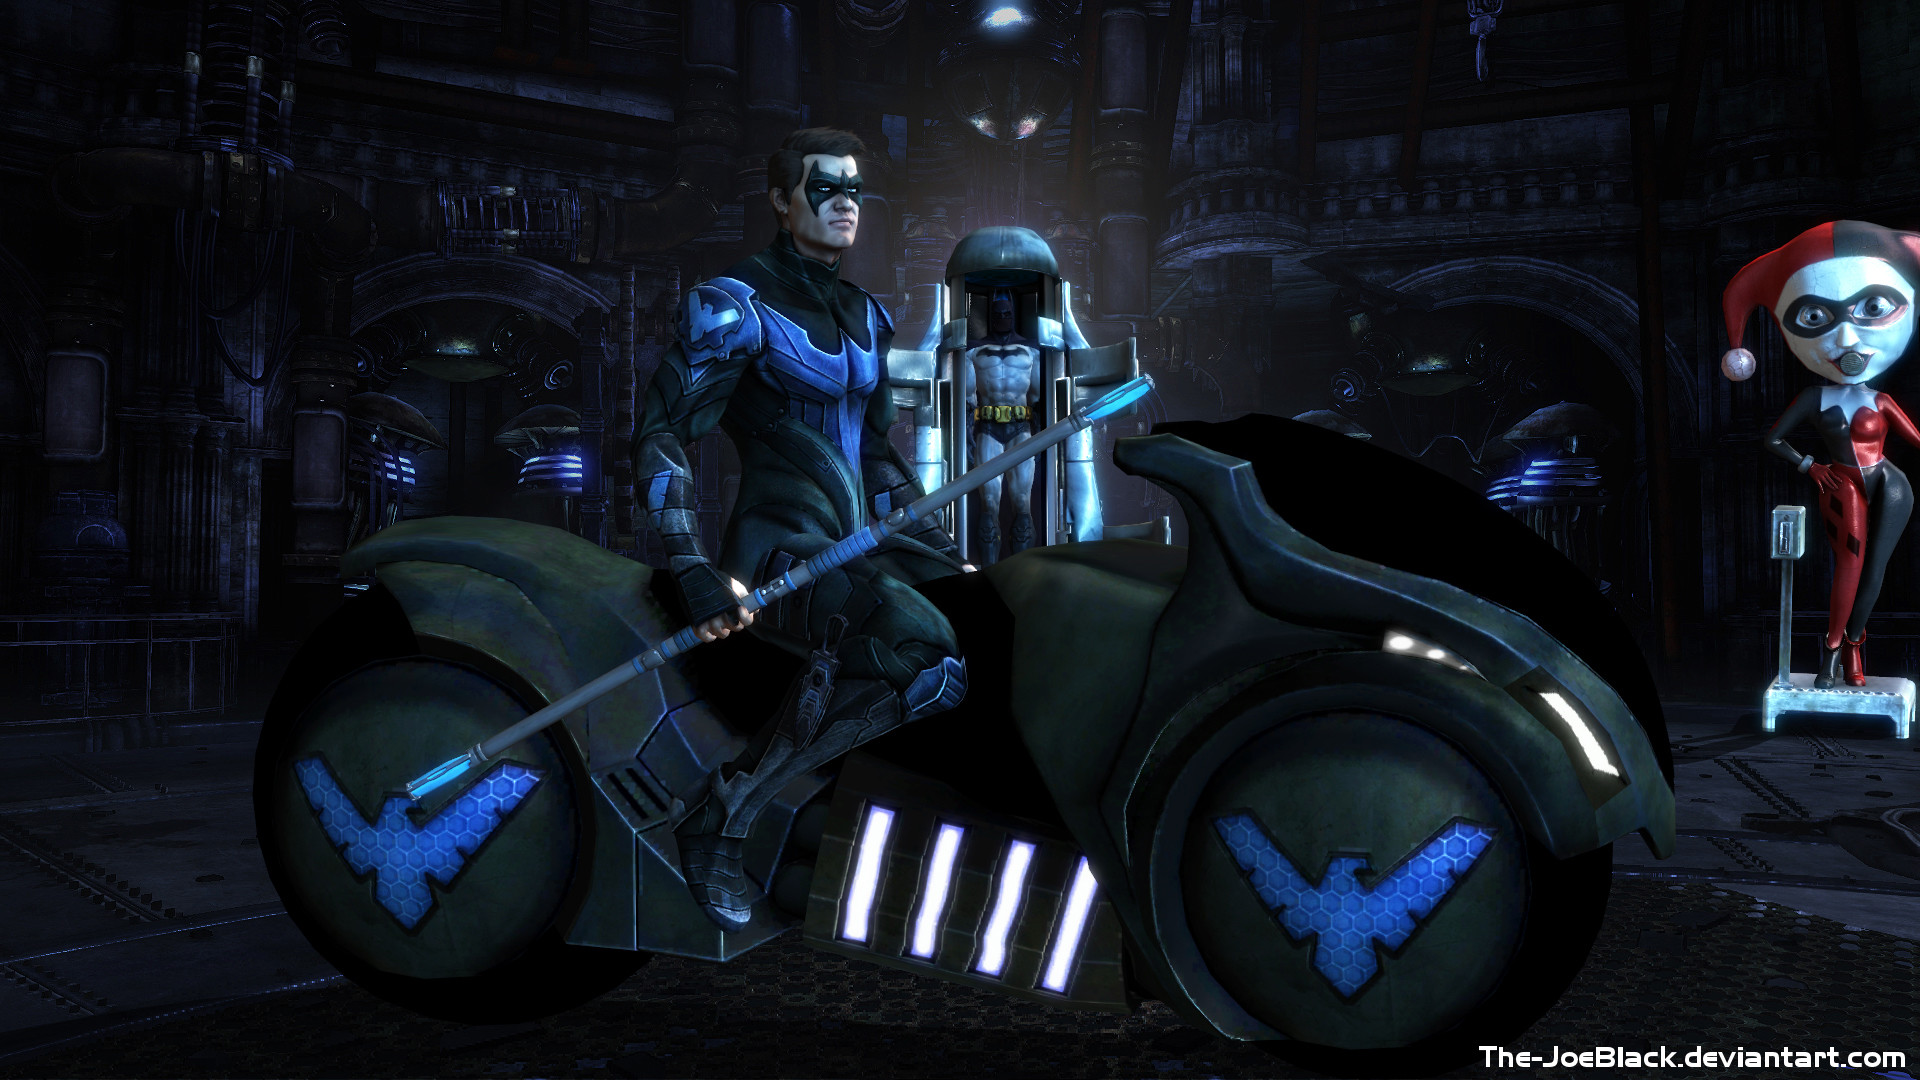 Res: 1920x1080, Injustice Nightwing wallpaper by The JoeBlack